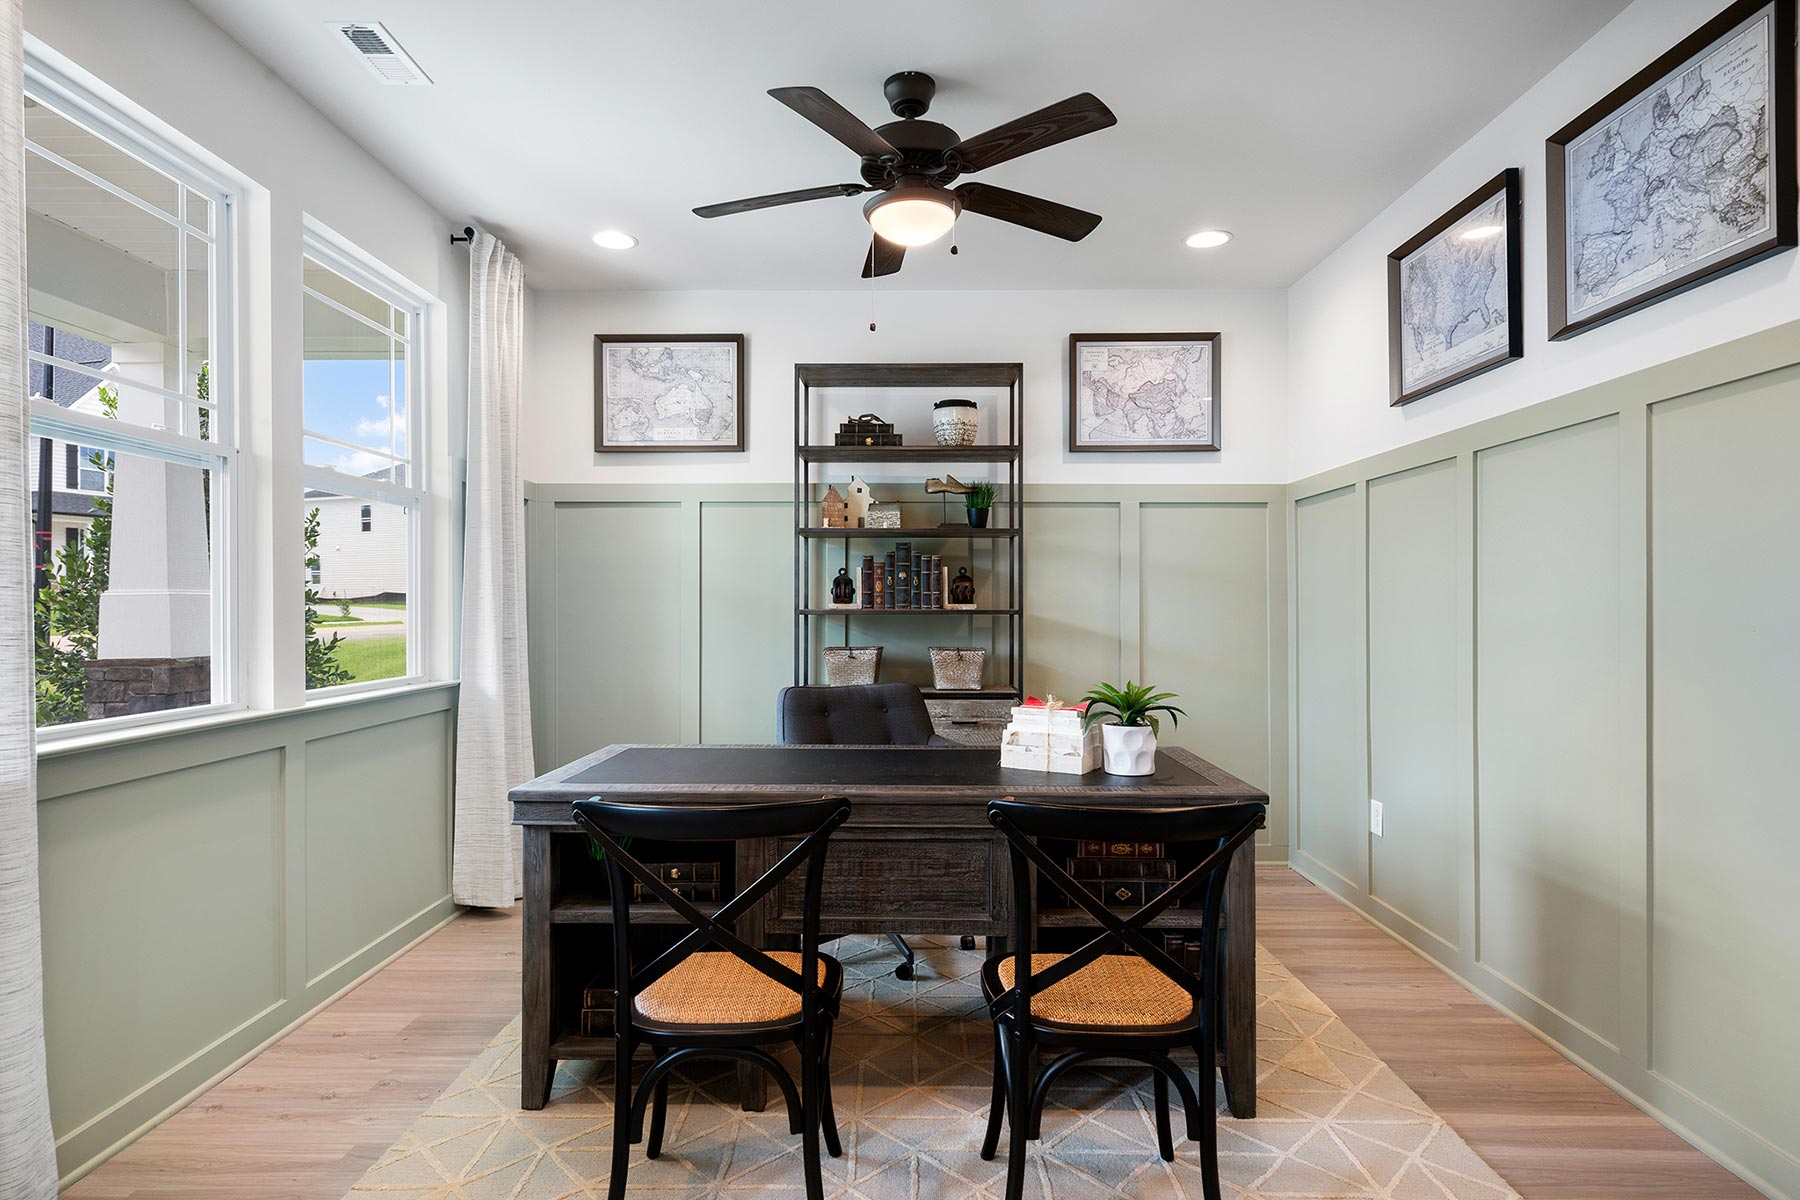 Bedford at Flowers Plantation Study Room in Clayton North Carolina by Mattamy Homes